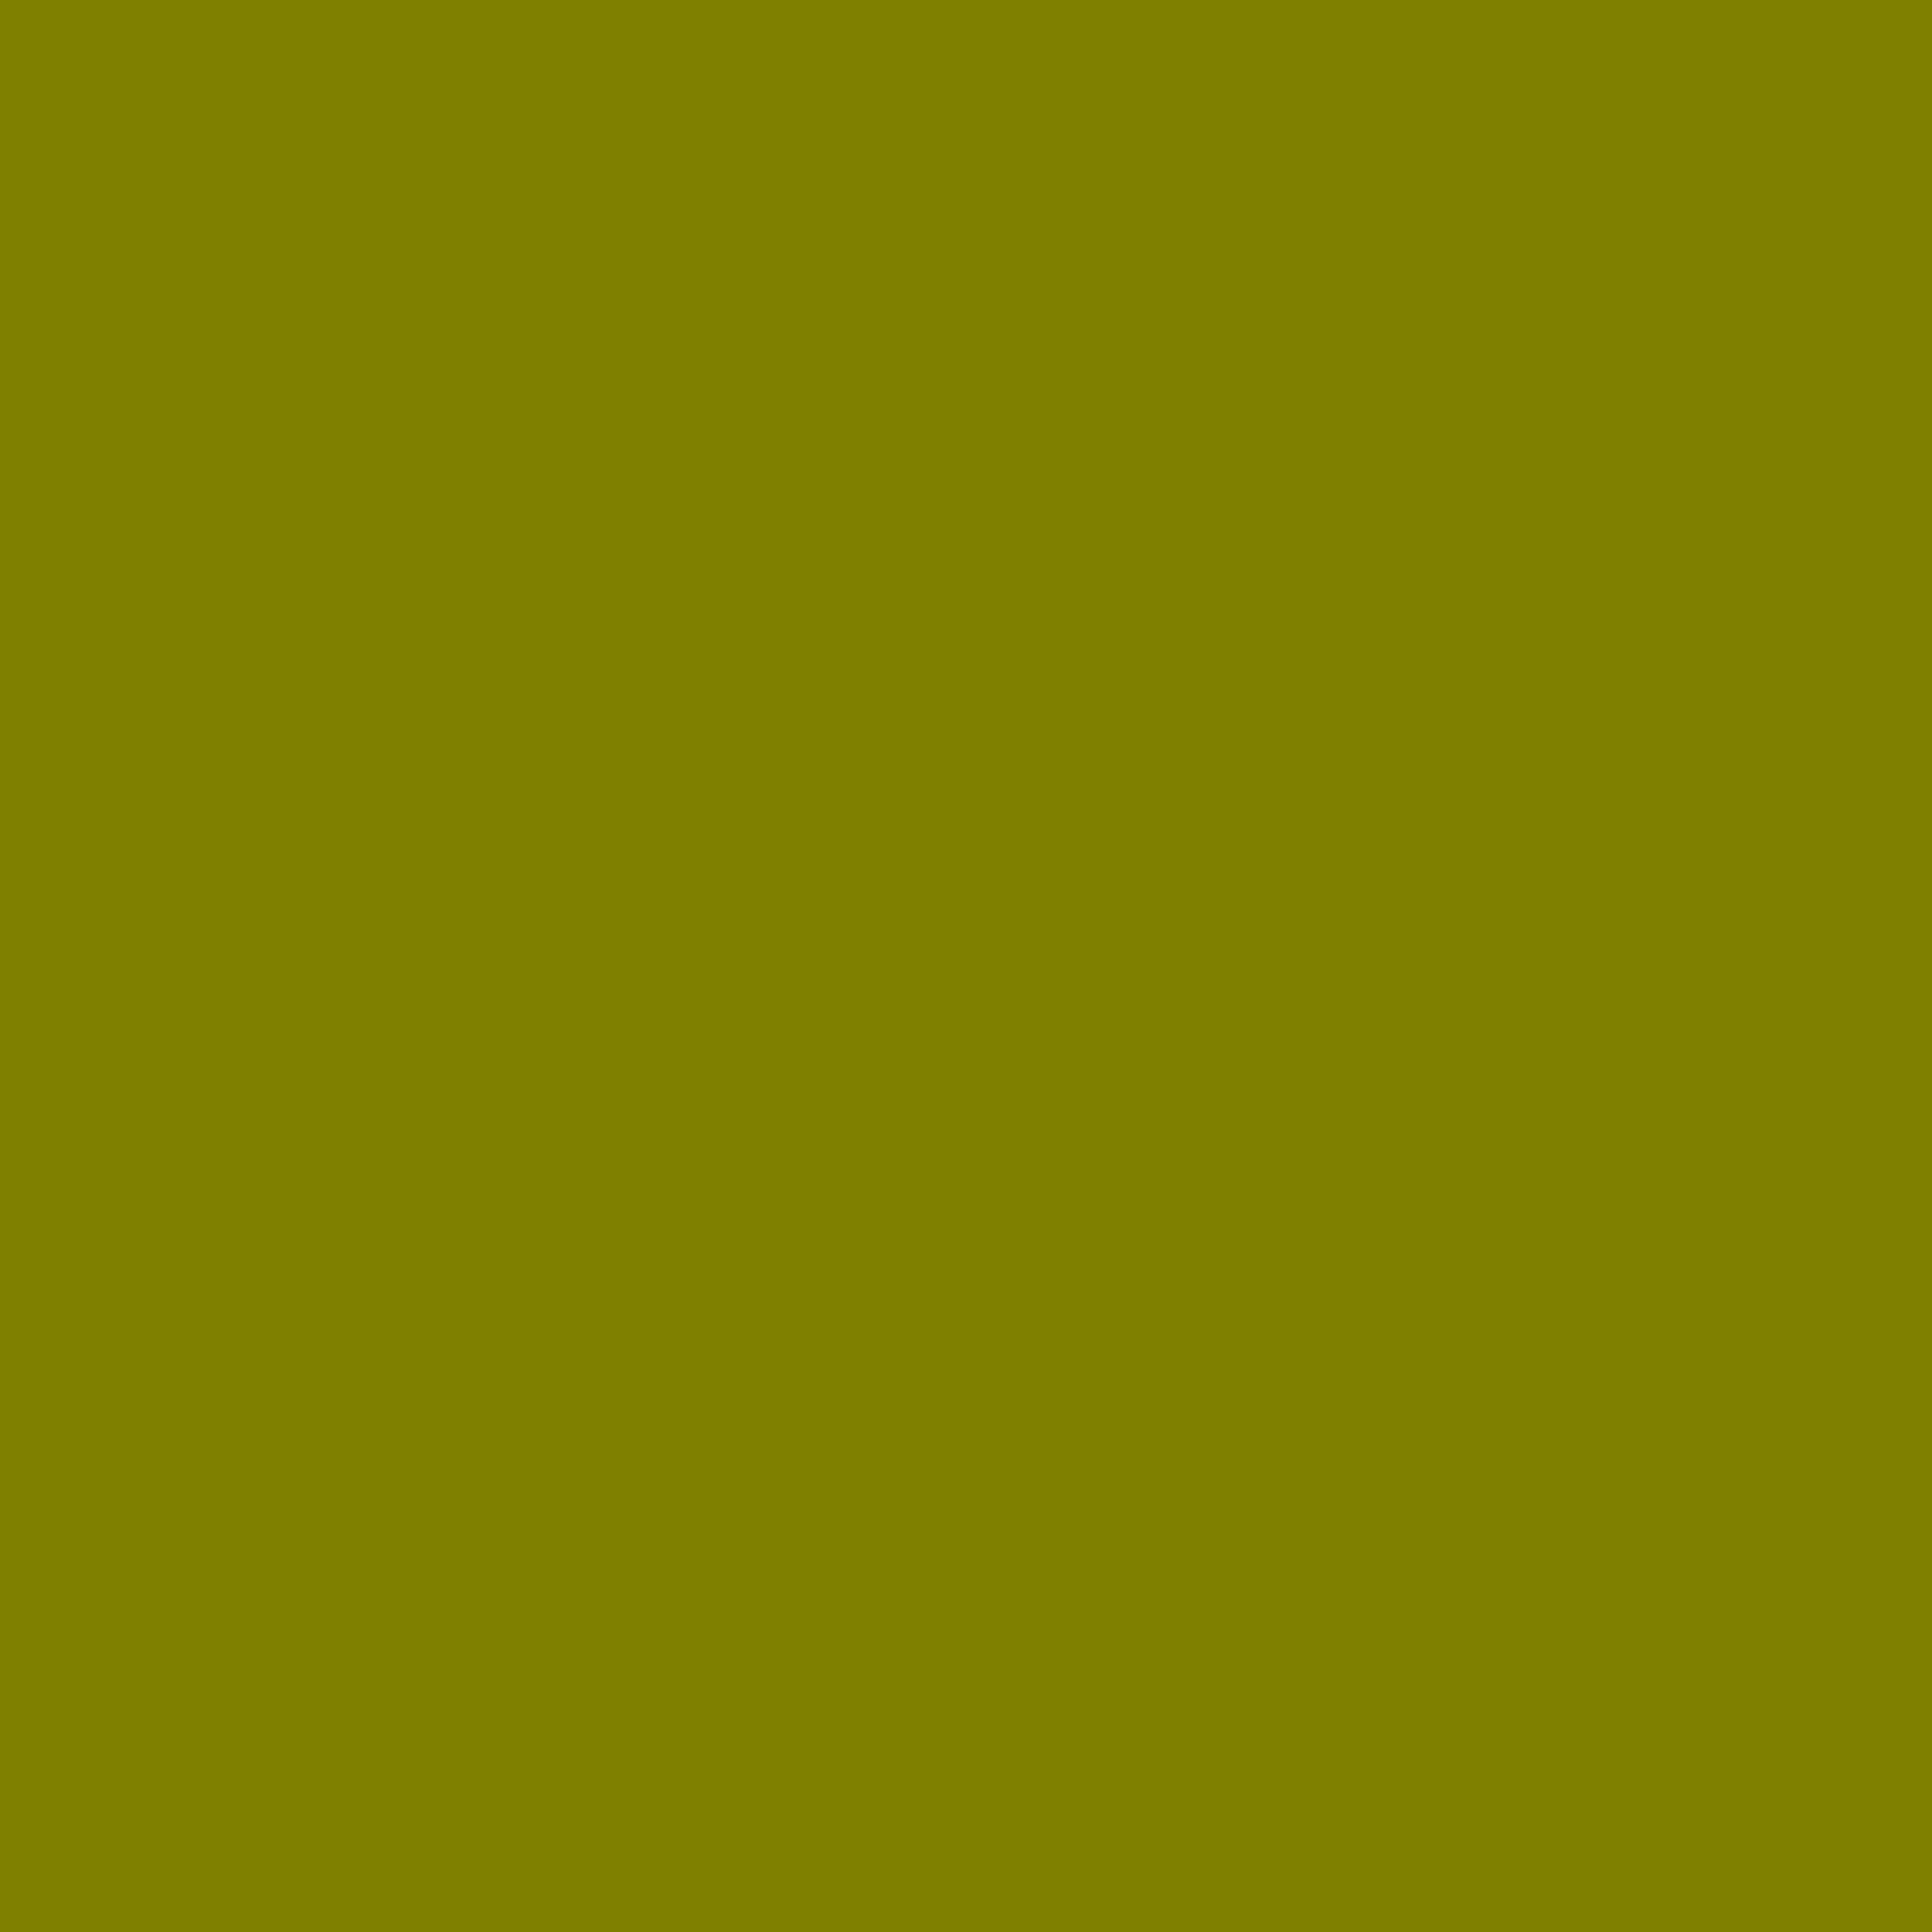 2732x2732 Olive Solid Color Background